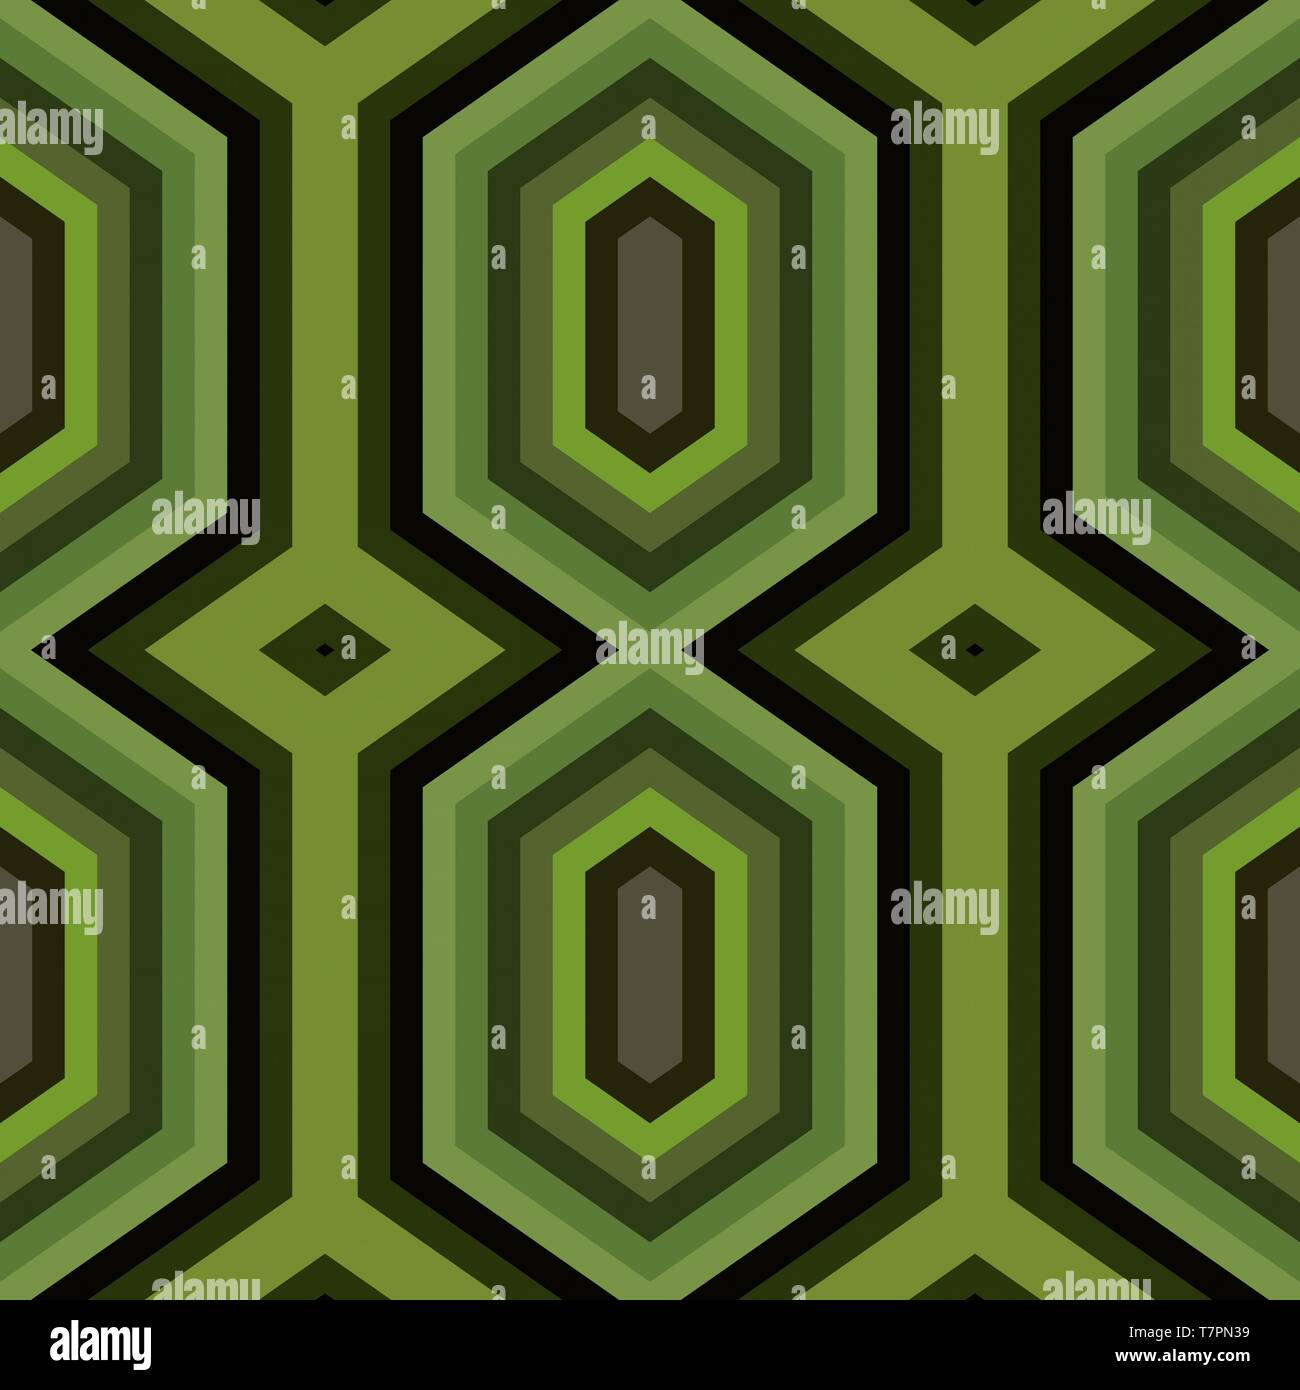 Abstract Hexagon Backdrop Style Olive Drab Black And Very